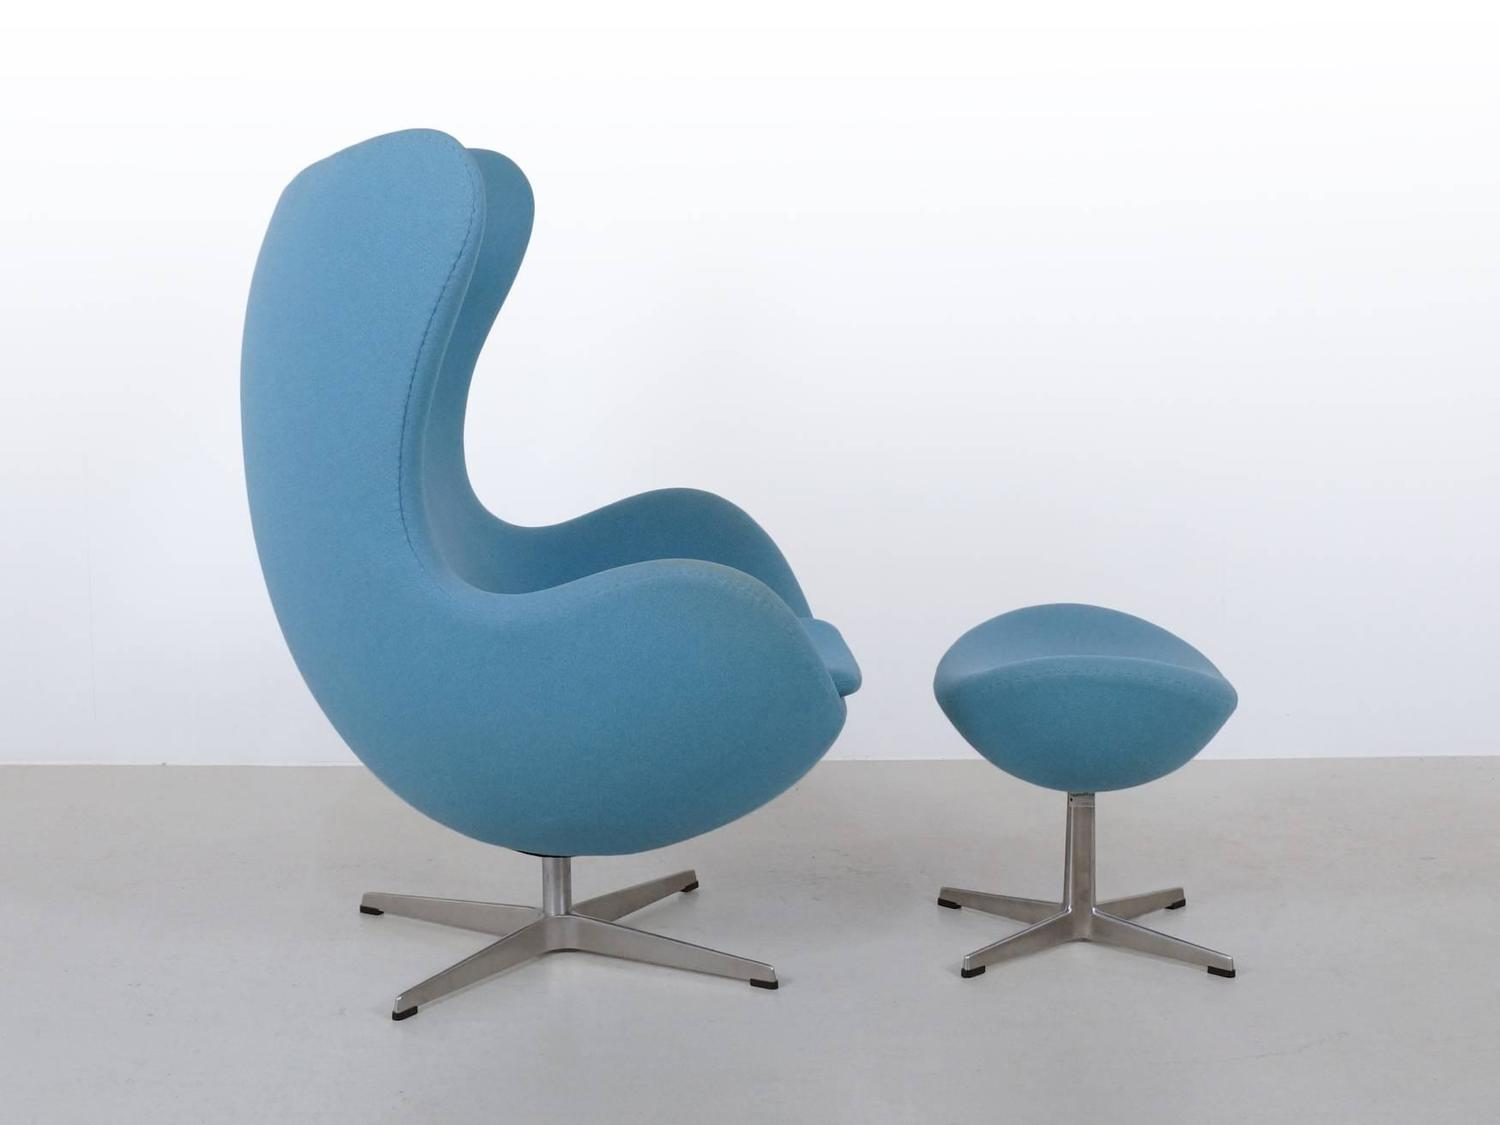 Arne Jacobsen Egg Chair Ebay Arne Jacobsen Egg Chair Blue